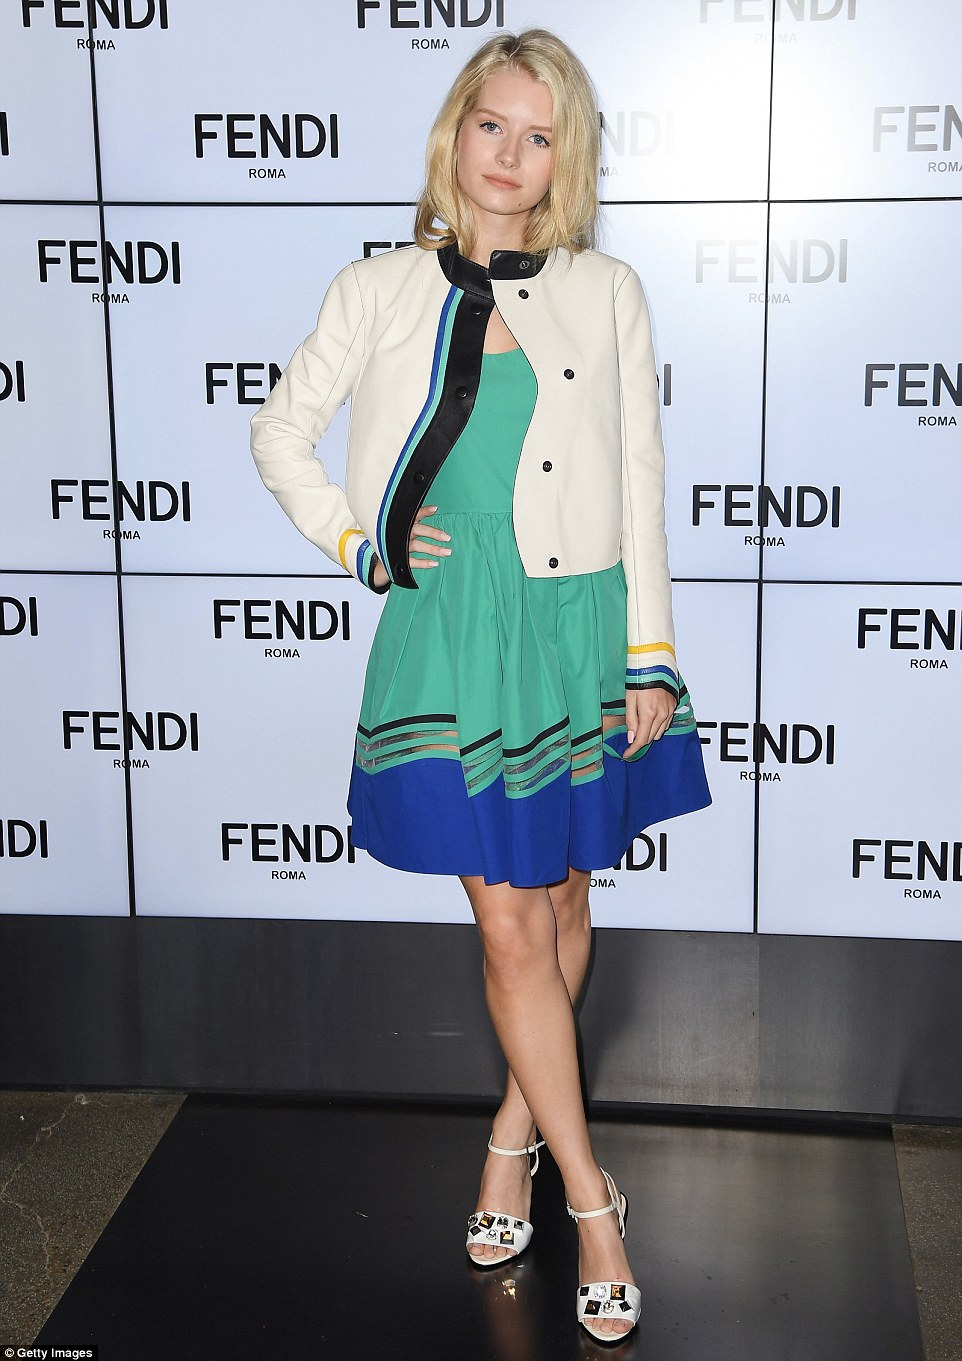 Fashion royalty: Model Lottie Moss, younger sister of supermodel Kate Moss, looked stylish in a green dress with blue hem